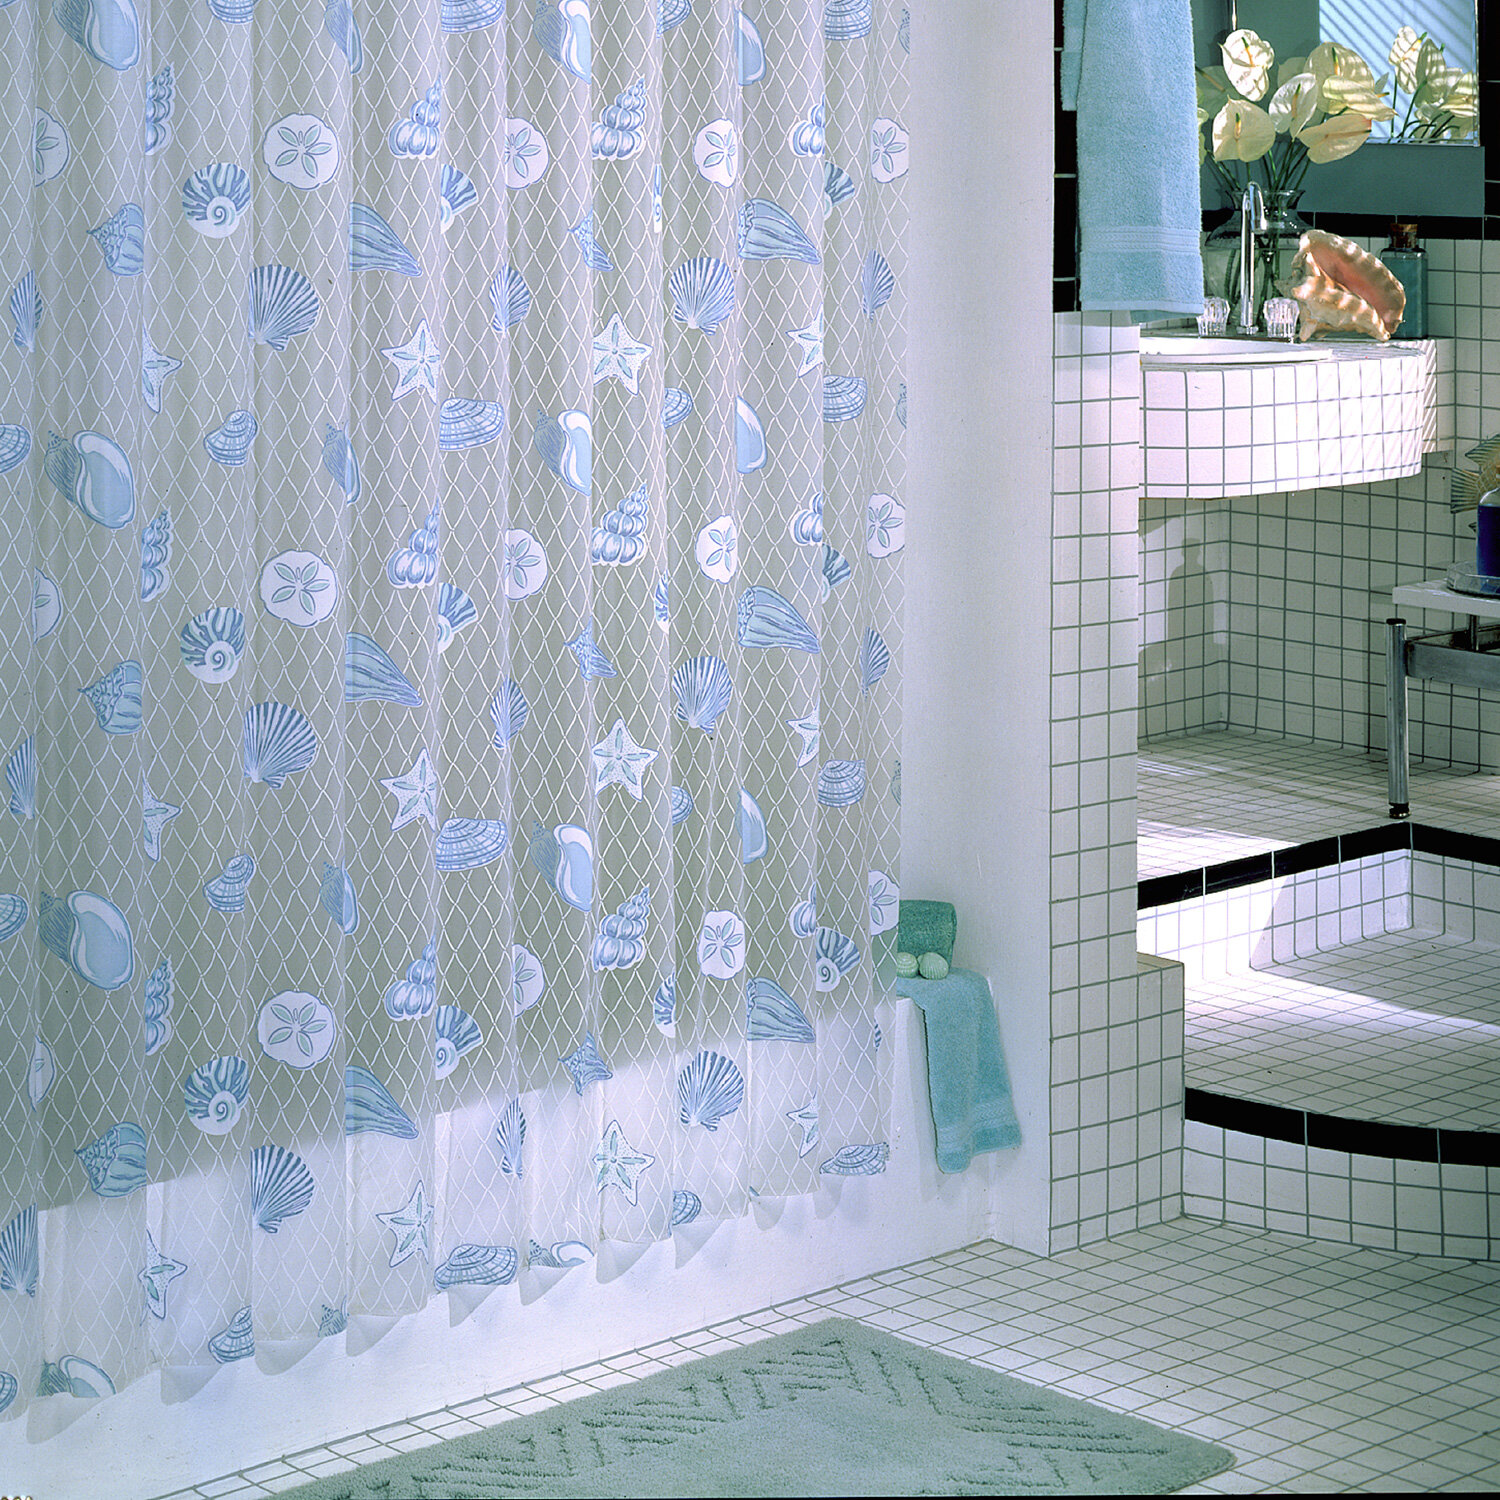 Sexy hot, adult theme shower curtain